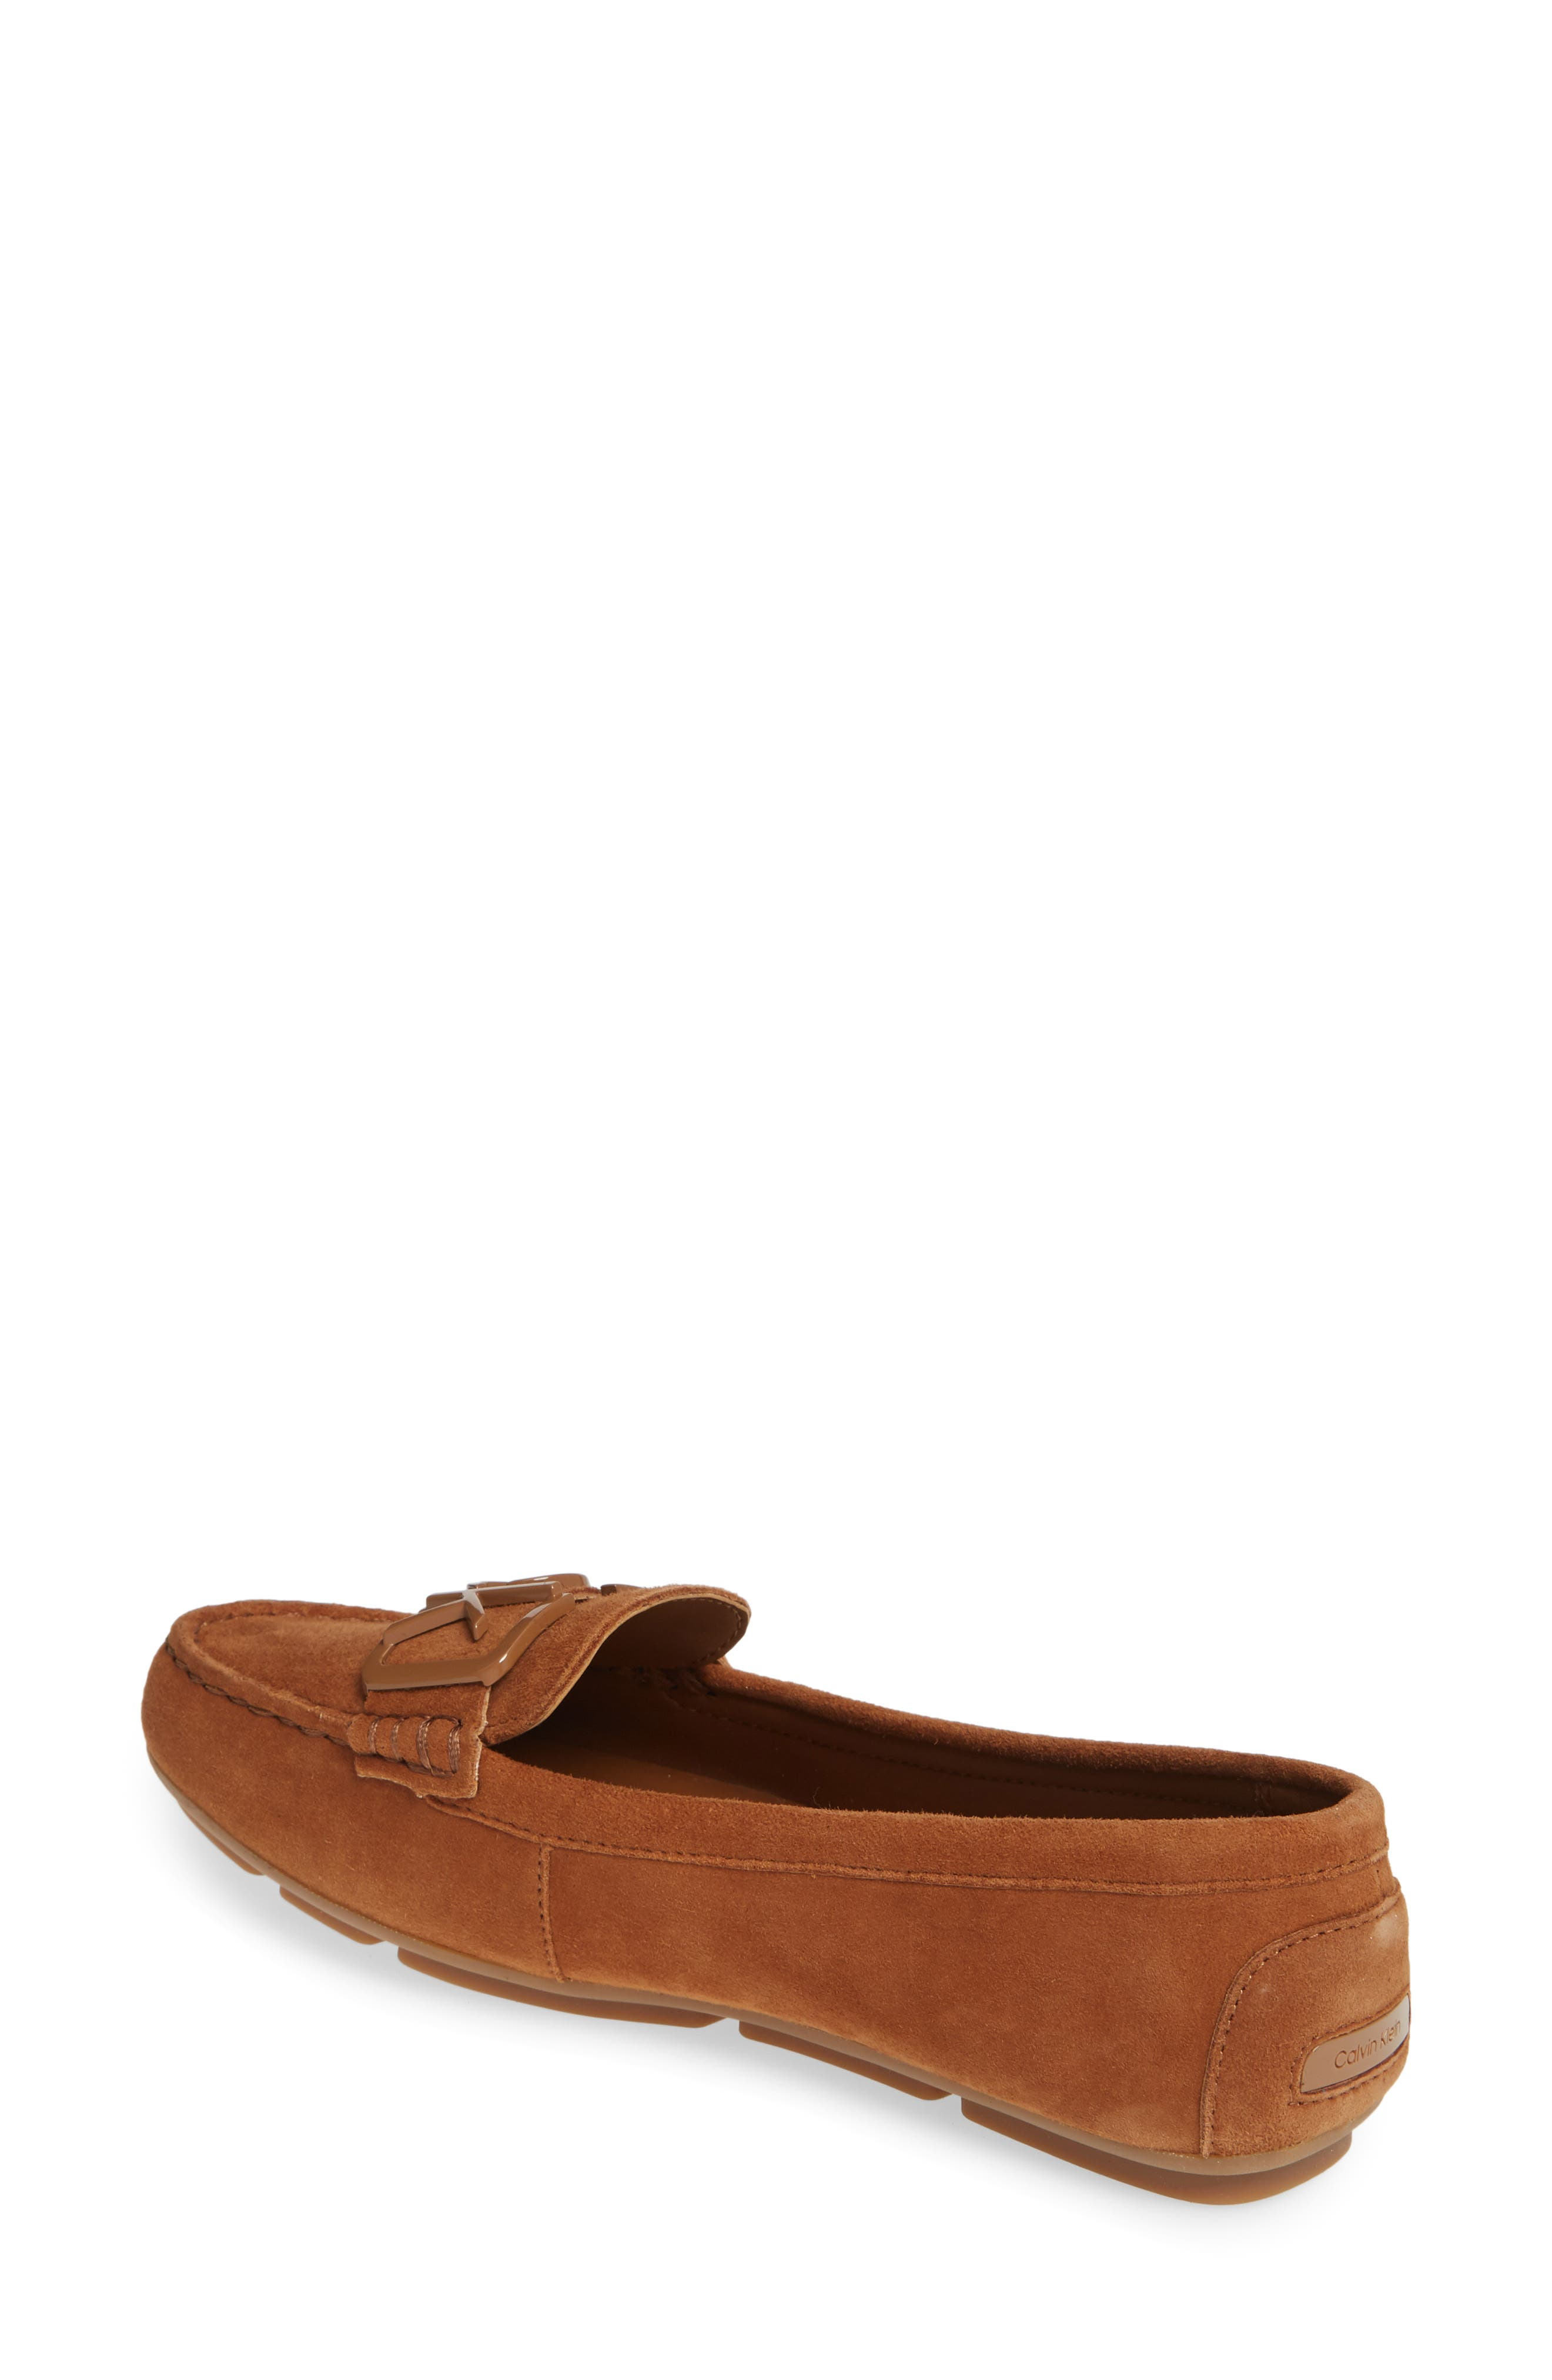 b18a79fa09f Women's Calvin Klein Loafers & Oxfords | Nordstrom